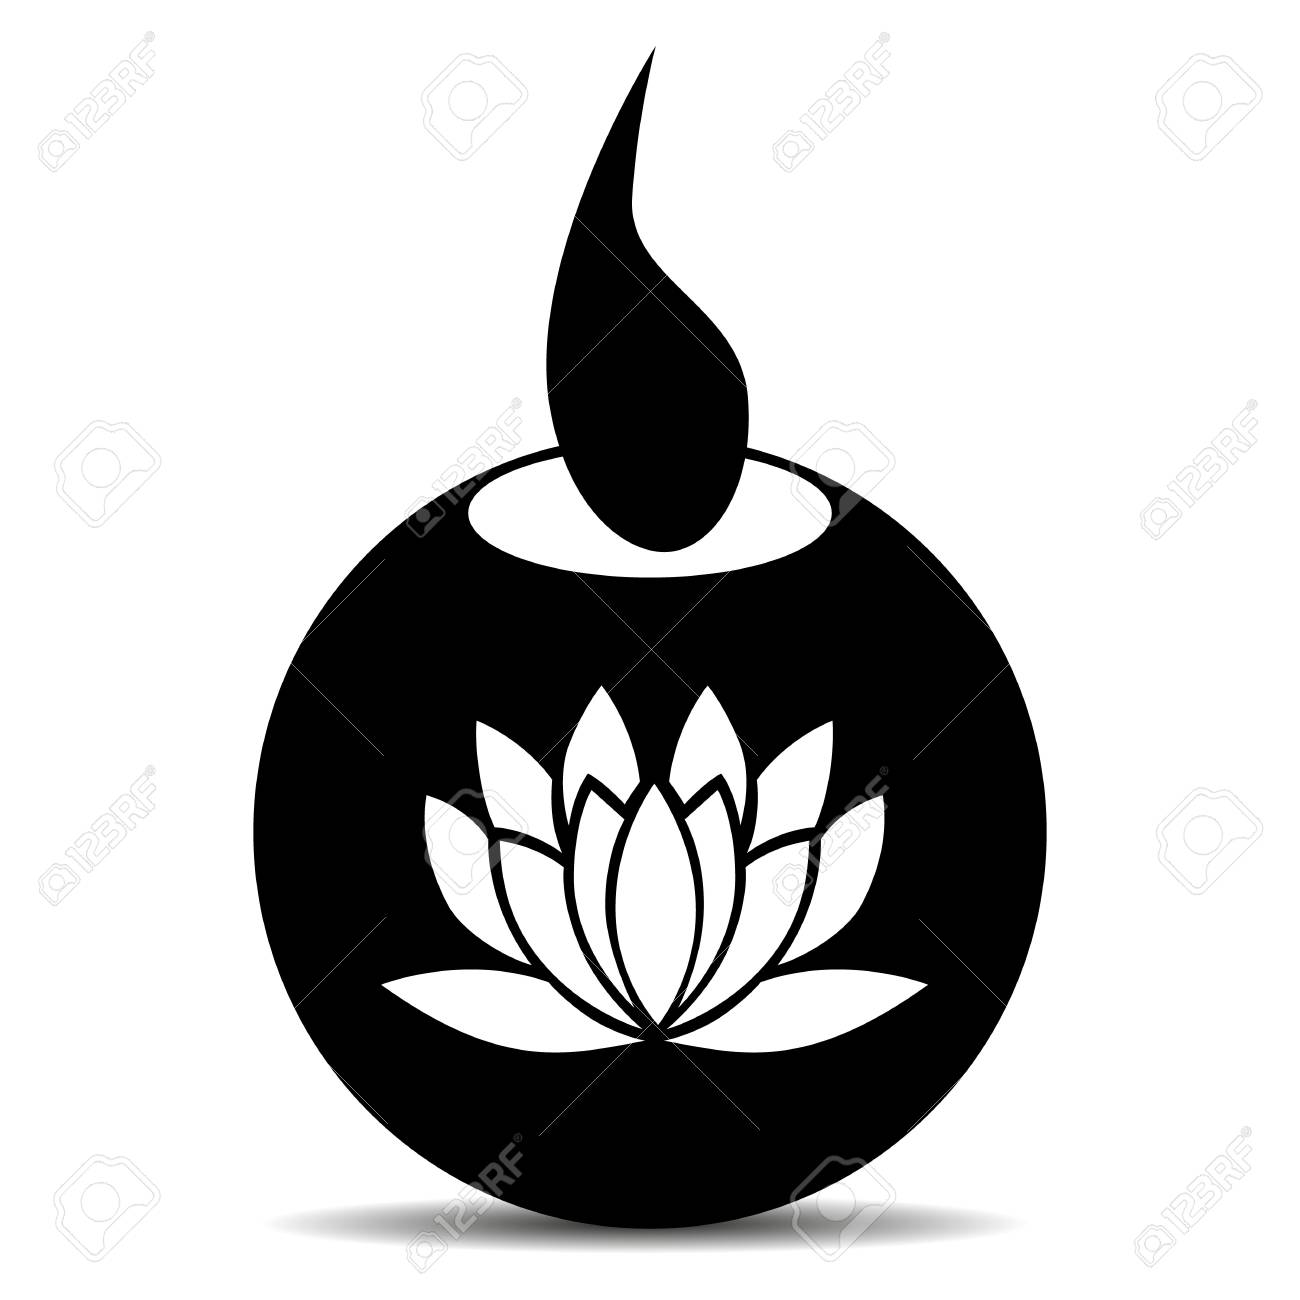 Candle for diwali celebration where in the middle is a drawing of a lotus